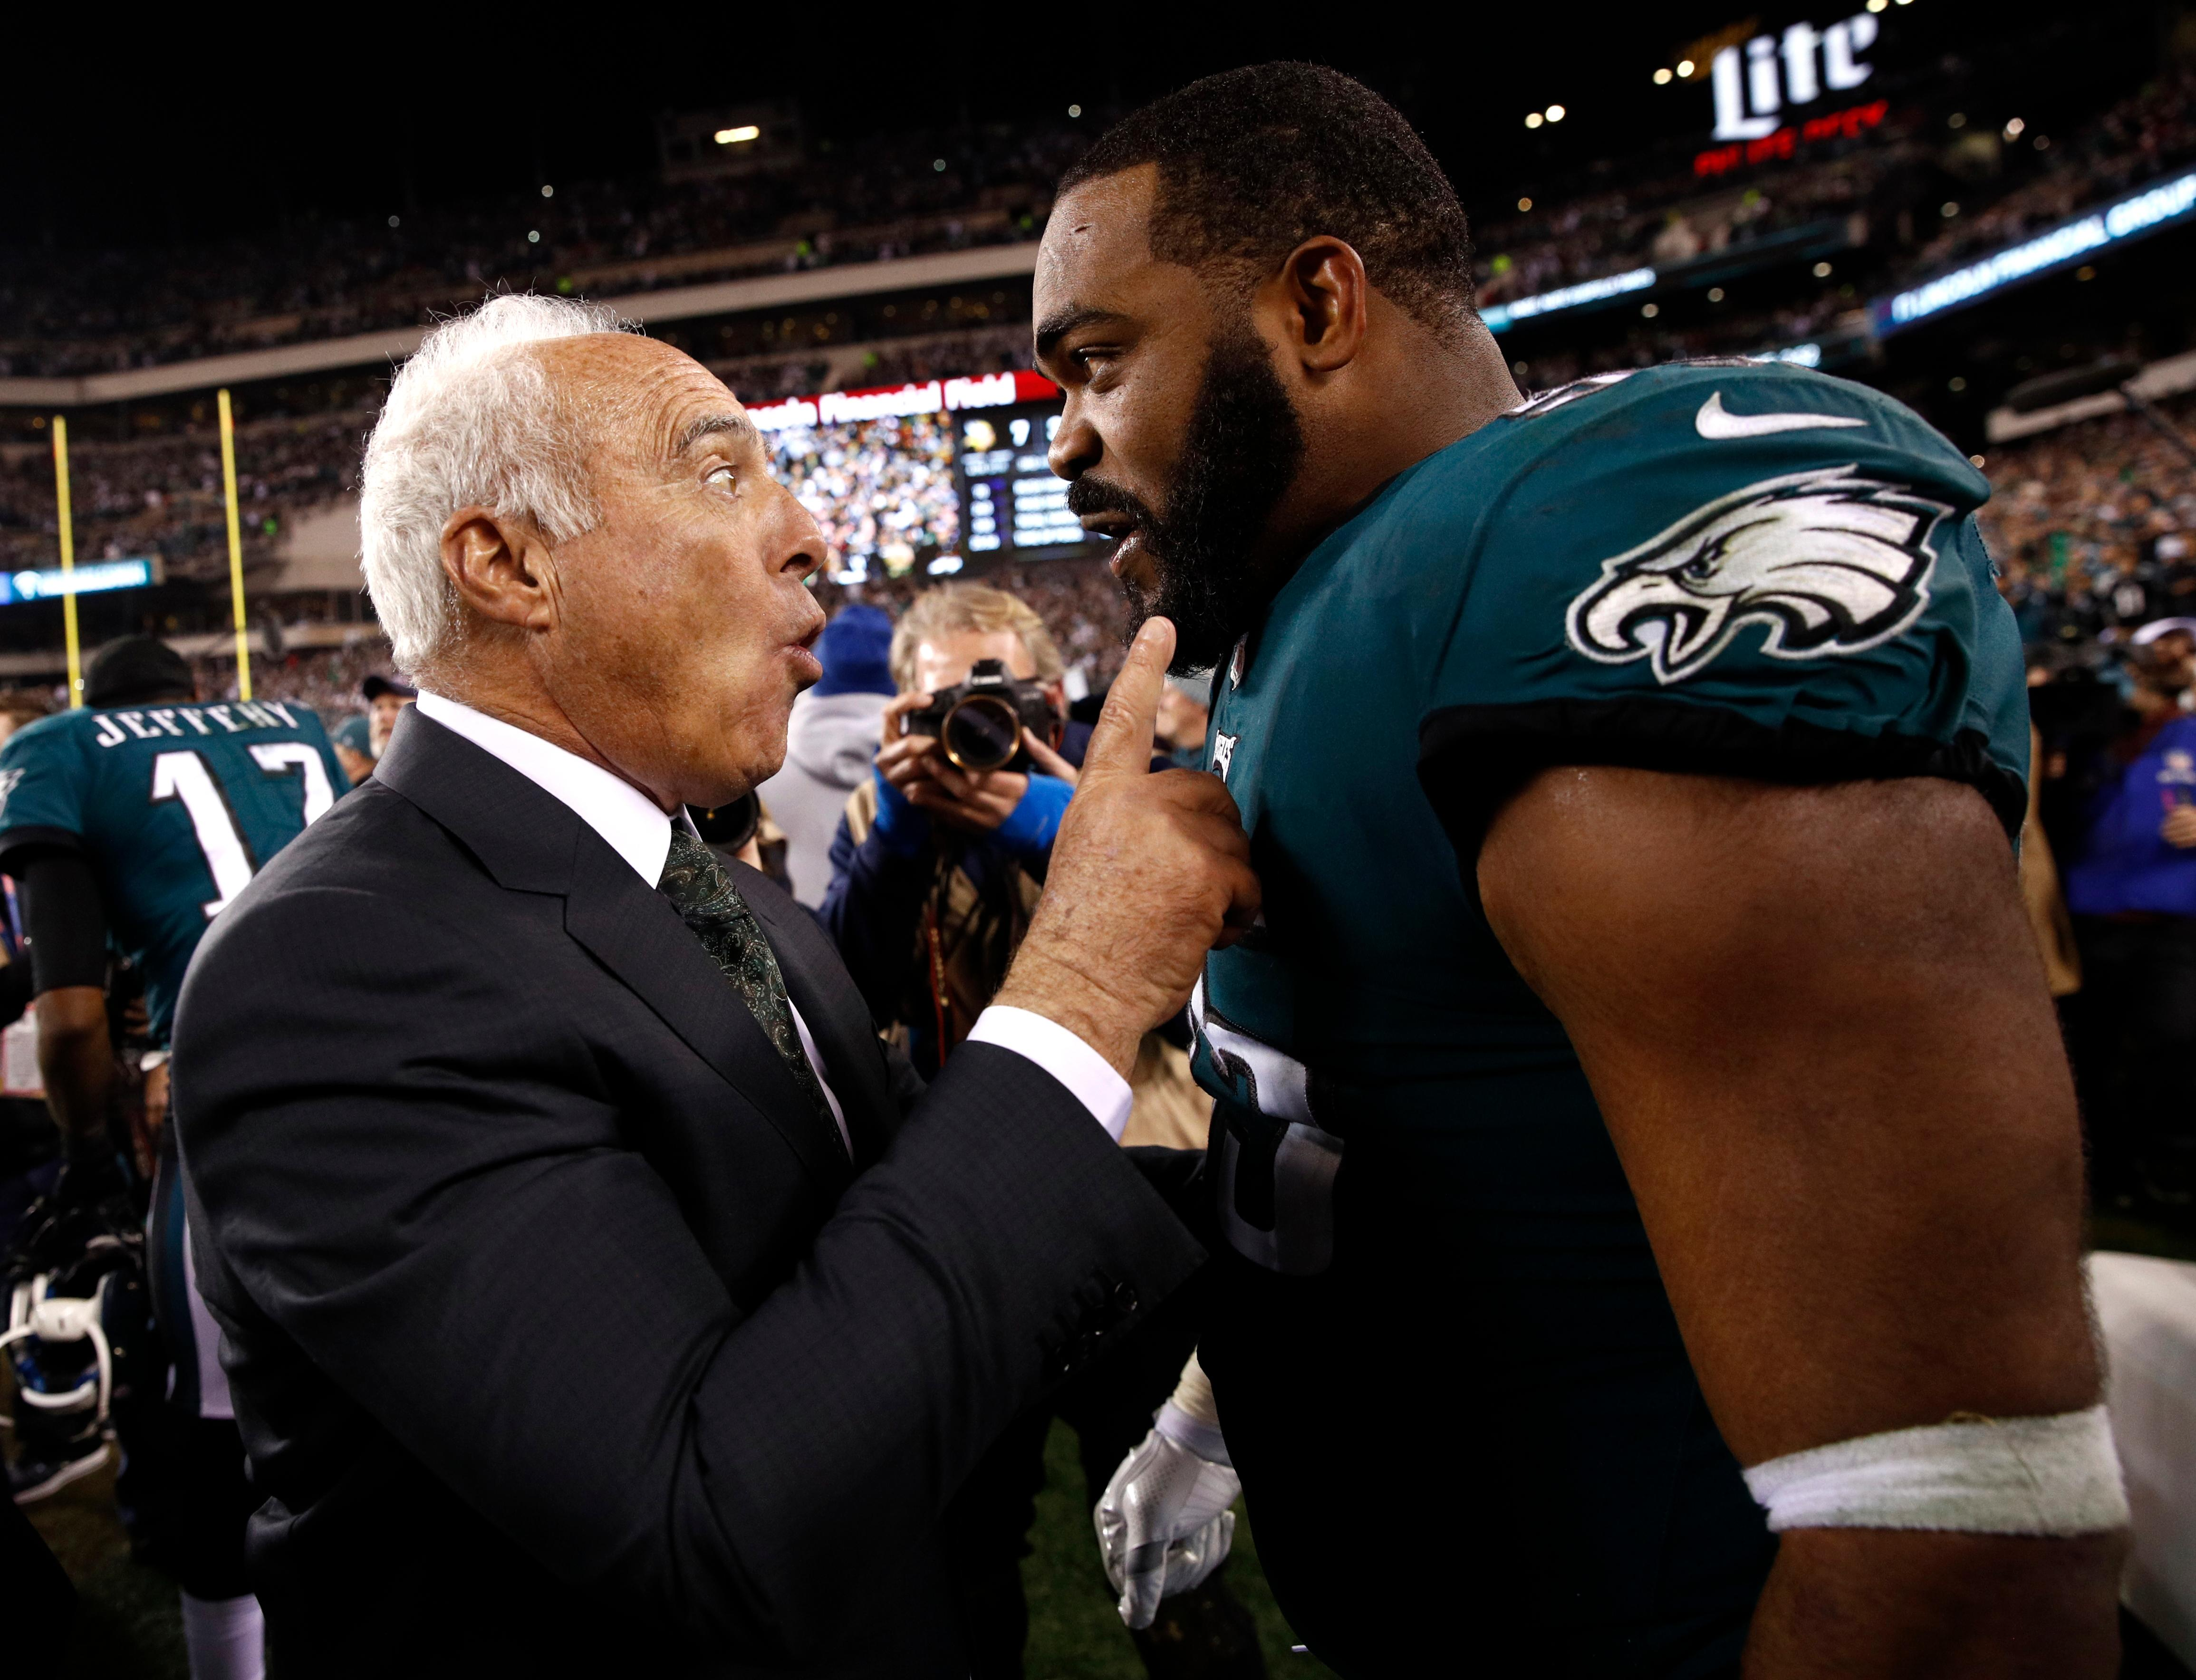 Philadelphia Eagles owner Jeffrey Lurie celebrates with Brandon Graham after the NFL football NFC championship game against the Minnesota Vikings Sunday, Jan. 21, 2018, in Philadelphia. The Eagles won 38-7 to advance to Super Bowl LII. (AP Photo/Patrick Semansky)